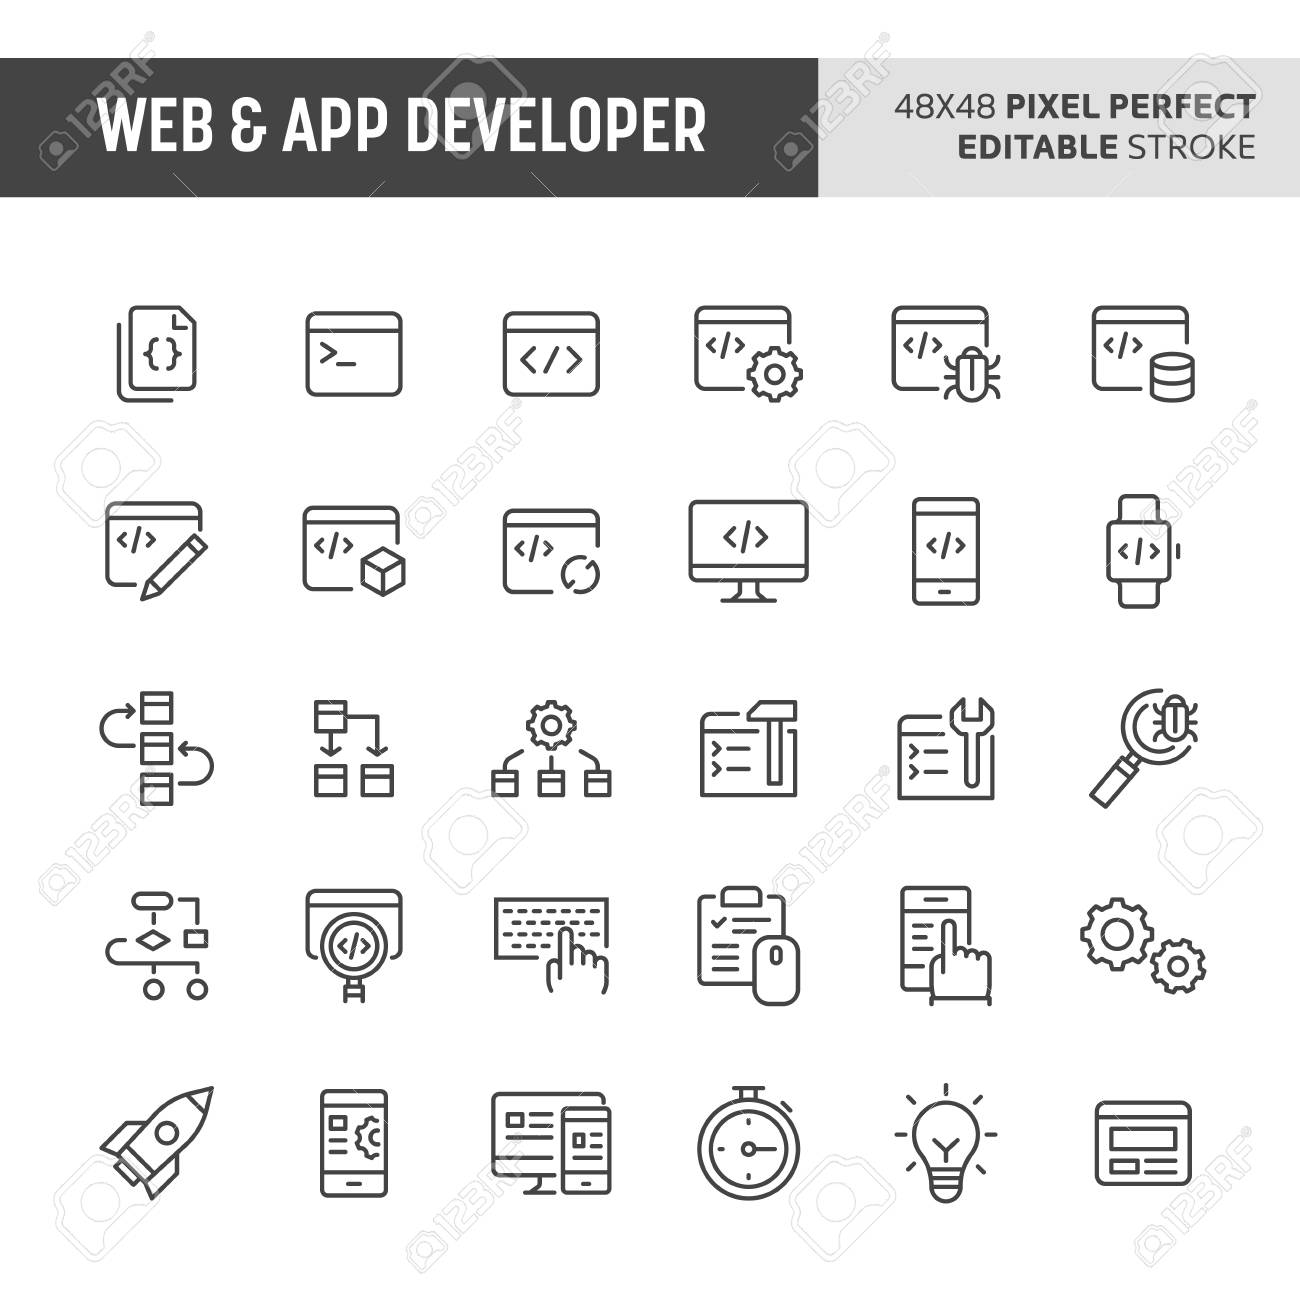 30 thin line icons associated with web & app developer  Symbols